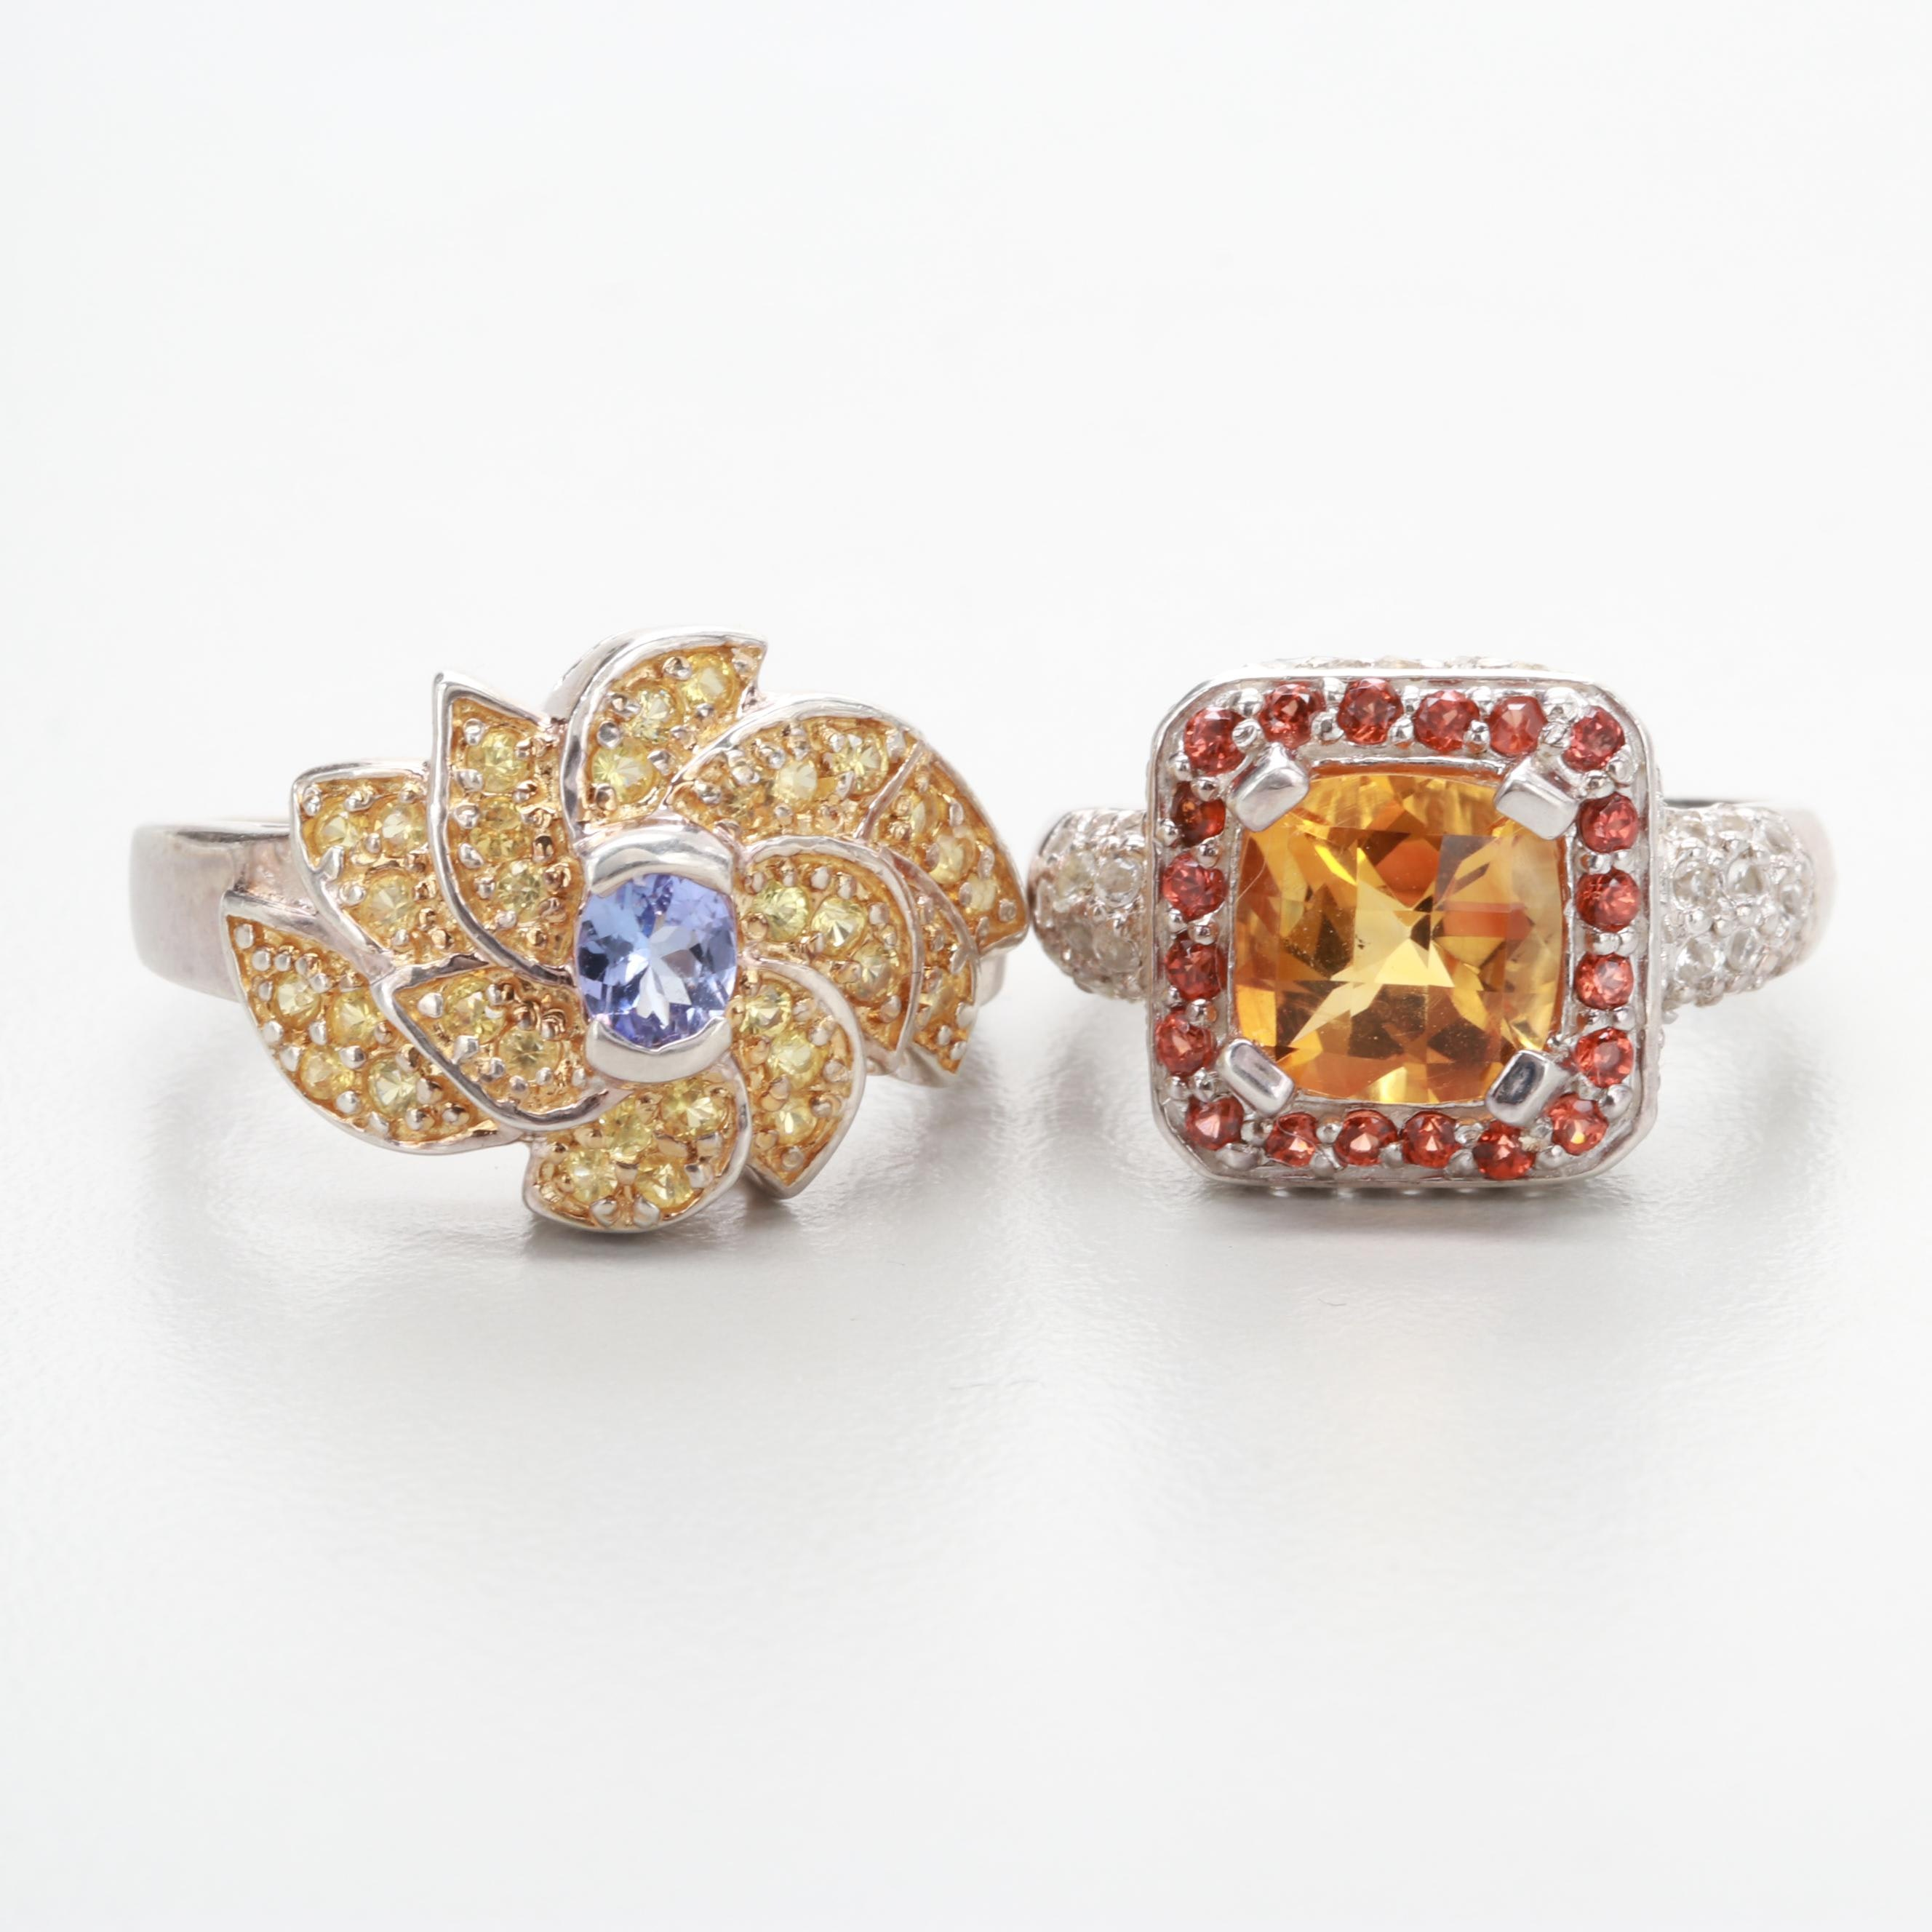 Sterling Ring Selection Including Citrine, Tanzanite, and Topaz